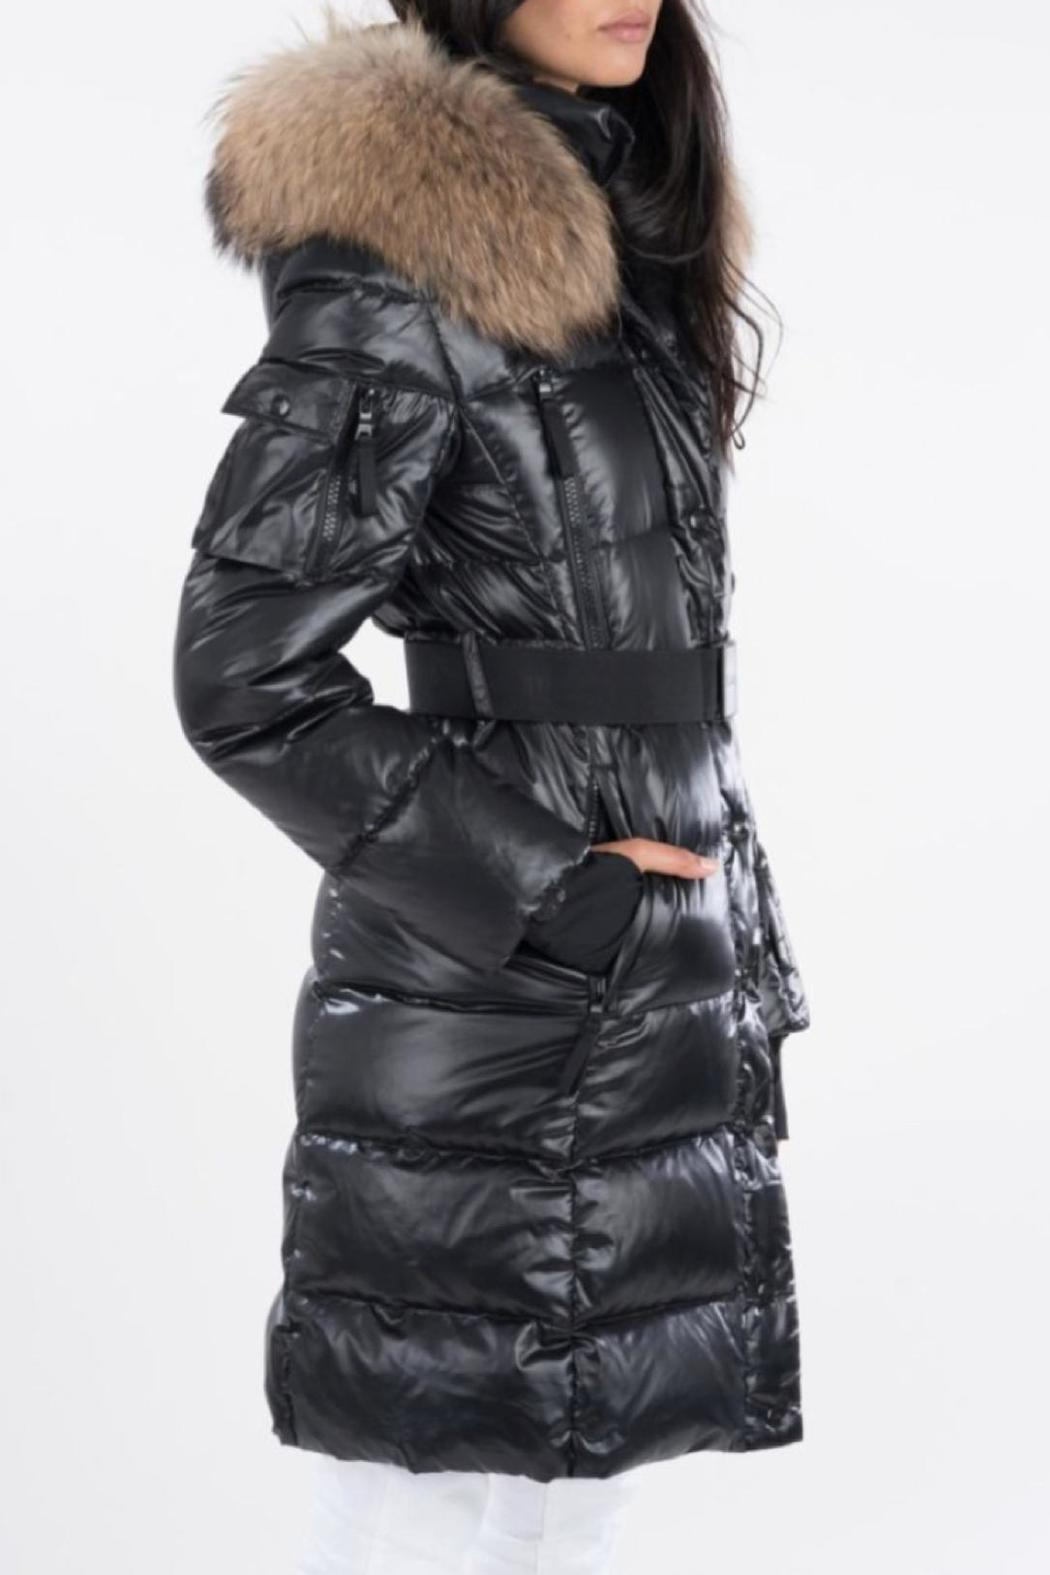 Sam Infinity Coat From Toronto By La Boutique Noire